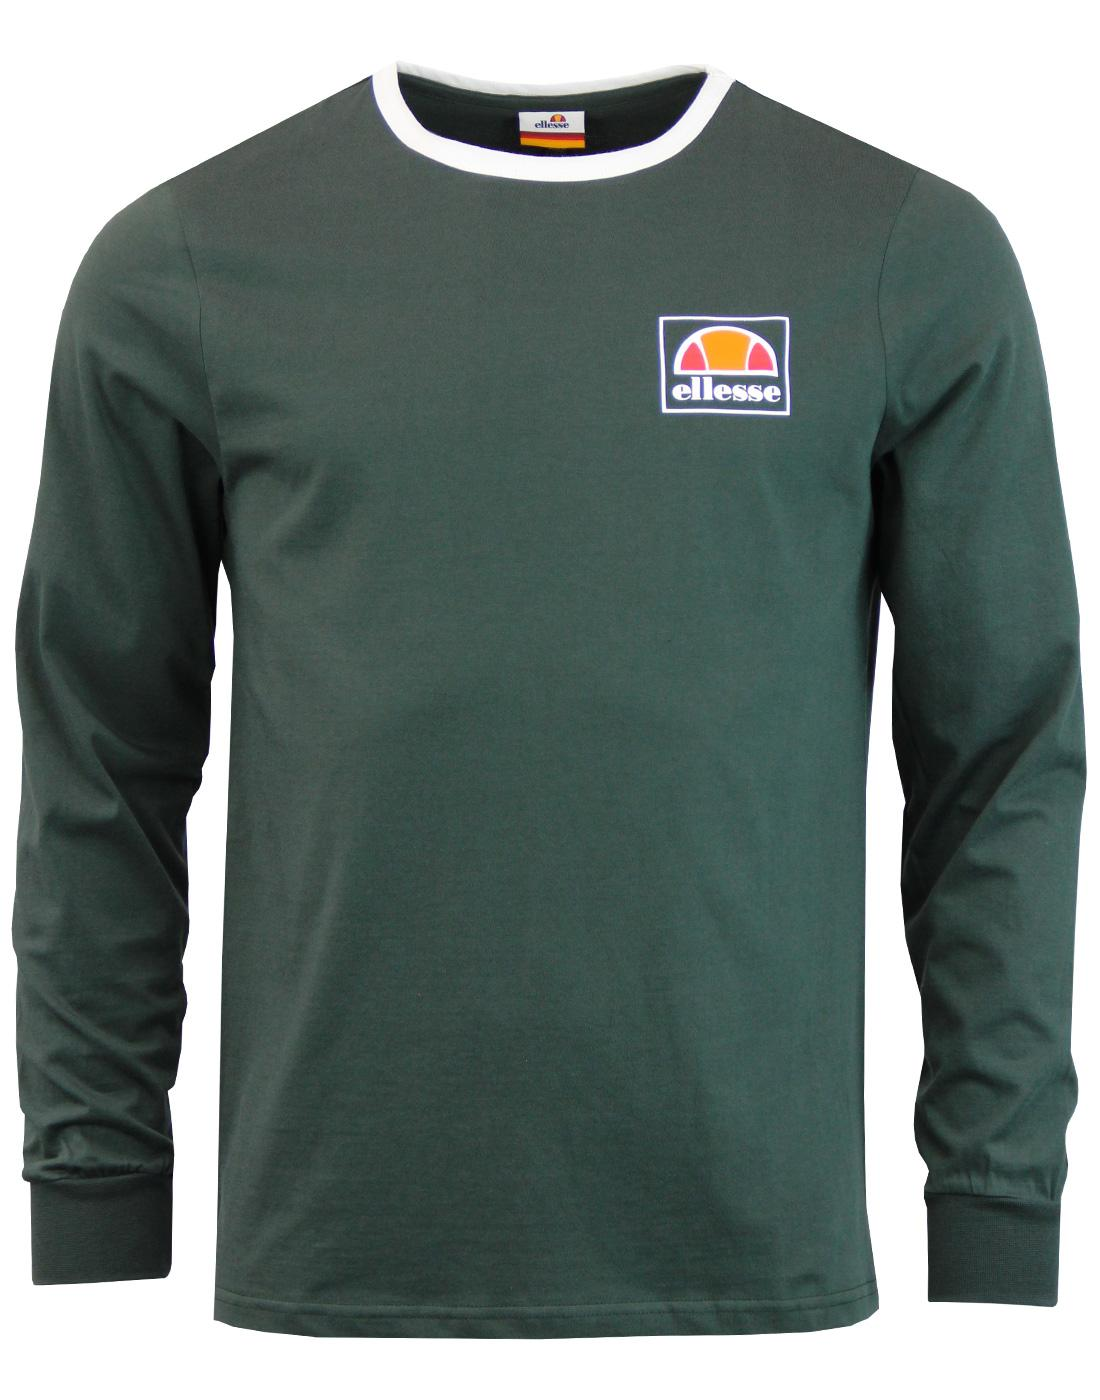 Ortler ELLESSE Retro Long Sleeve Ringer Tee (DS)